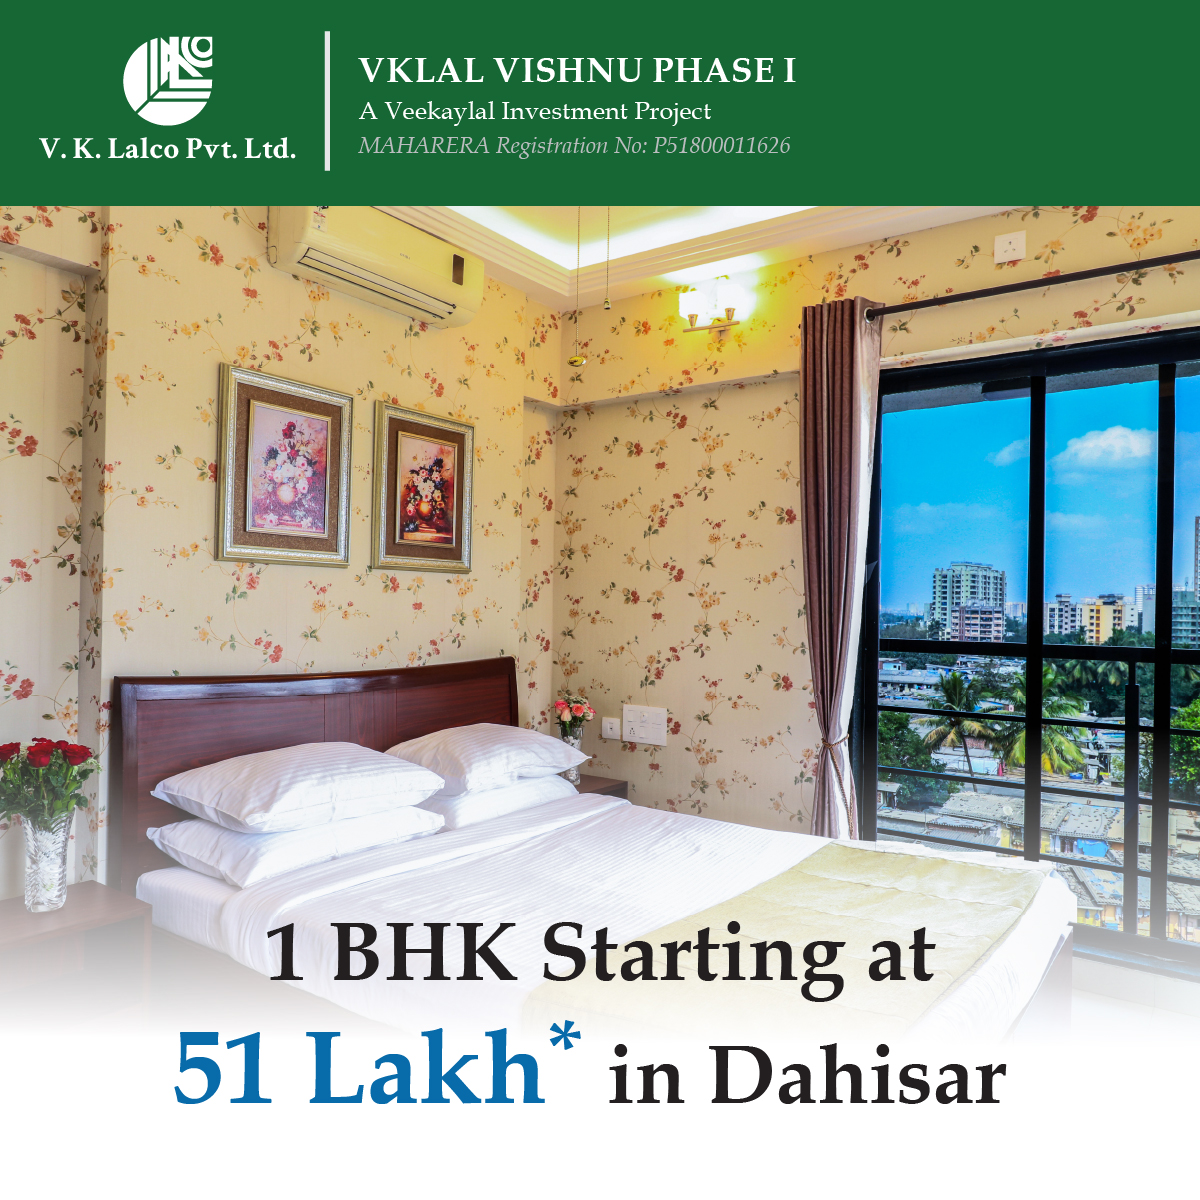 Key to happiness is finding the key to your dream house at affordable price. Call us for more details for 1 bhk at VKLAL Vishnu, Dahisar. . . . #dahisar #1bhk #spacious #sgnpview #view #greenary #fresh #realestate #mumbairealestate #propertyforsale #infrastructure #mumbai_citypic.twitter.com/CObP0bB9q2